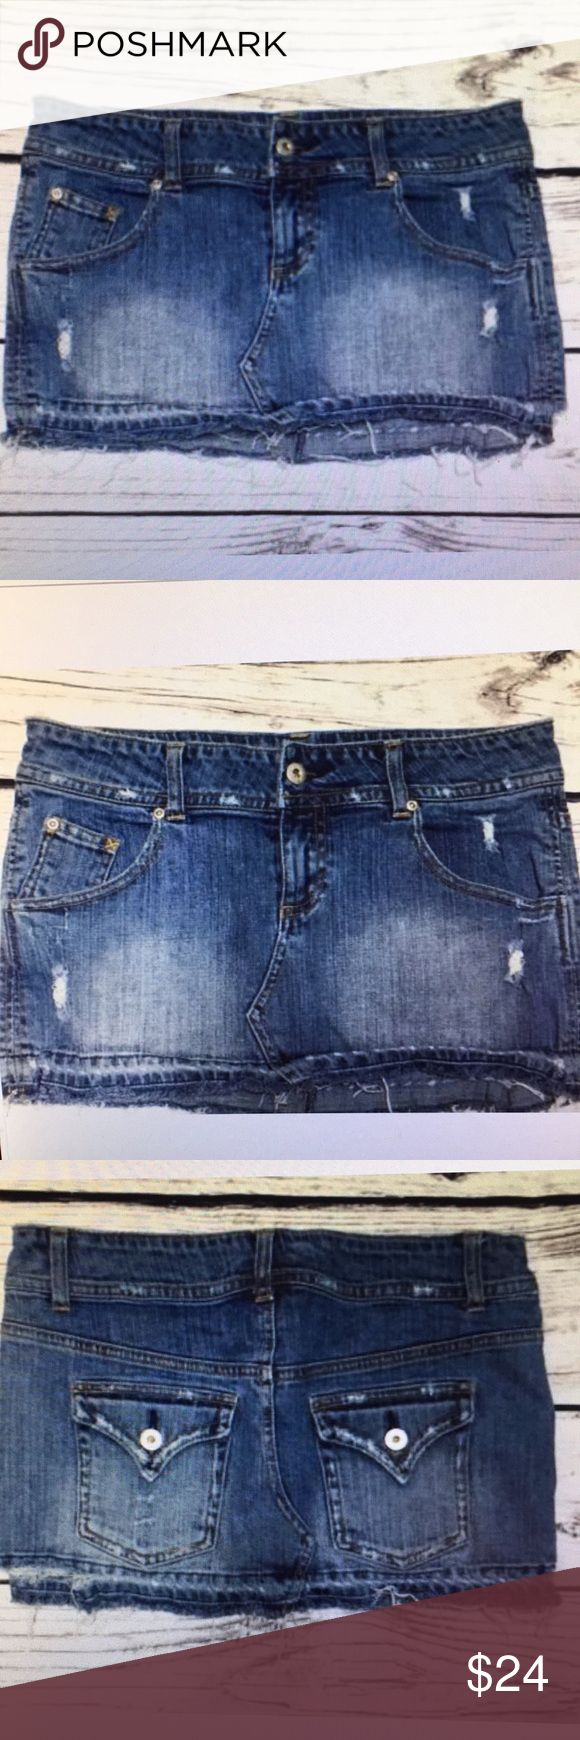 Taunt Junior Size 5 Shredded Mini Skirt Todd junior size 5 destroyed shred it Jean miniskirt grunge five pocket cotton blend. 15 inch waste laying flat 15 1/2  inch hip 11 inches in length from top to hem Taunt Skirts Mini